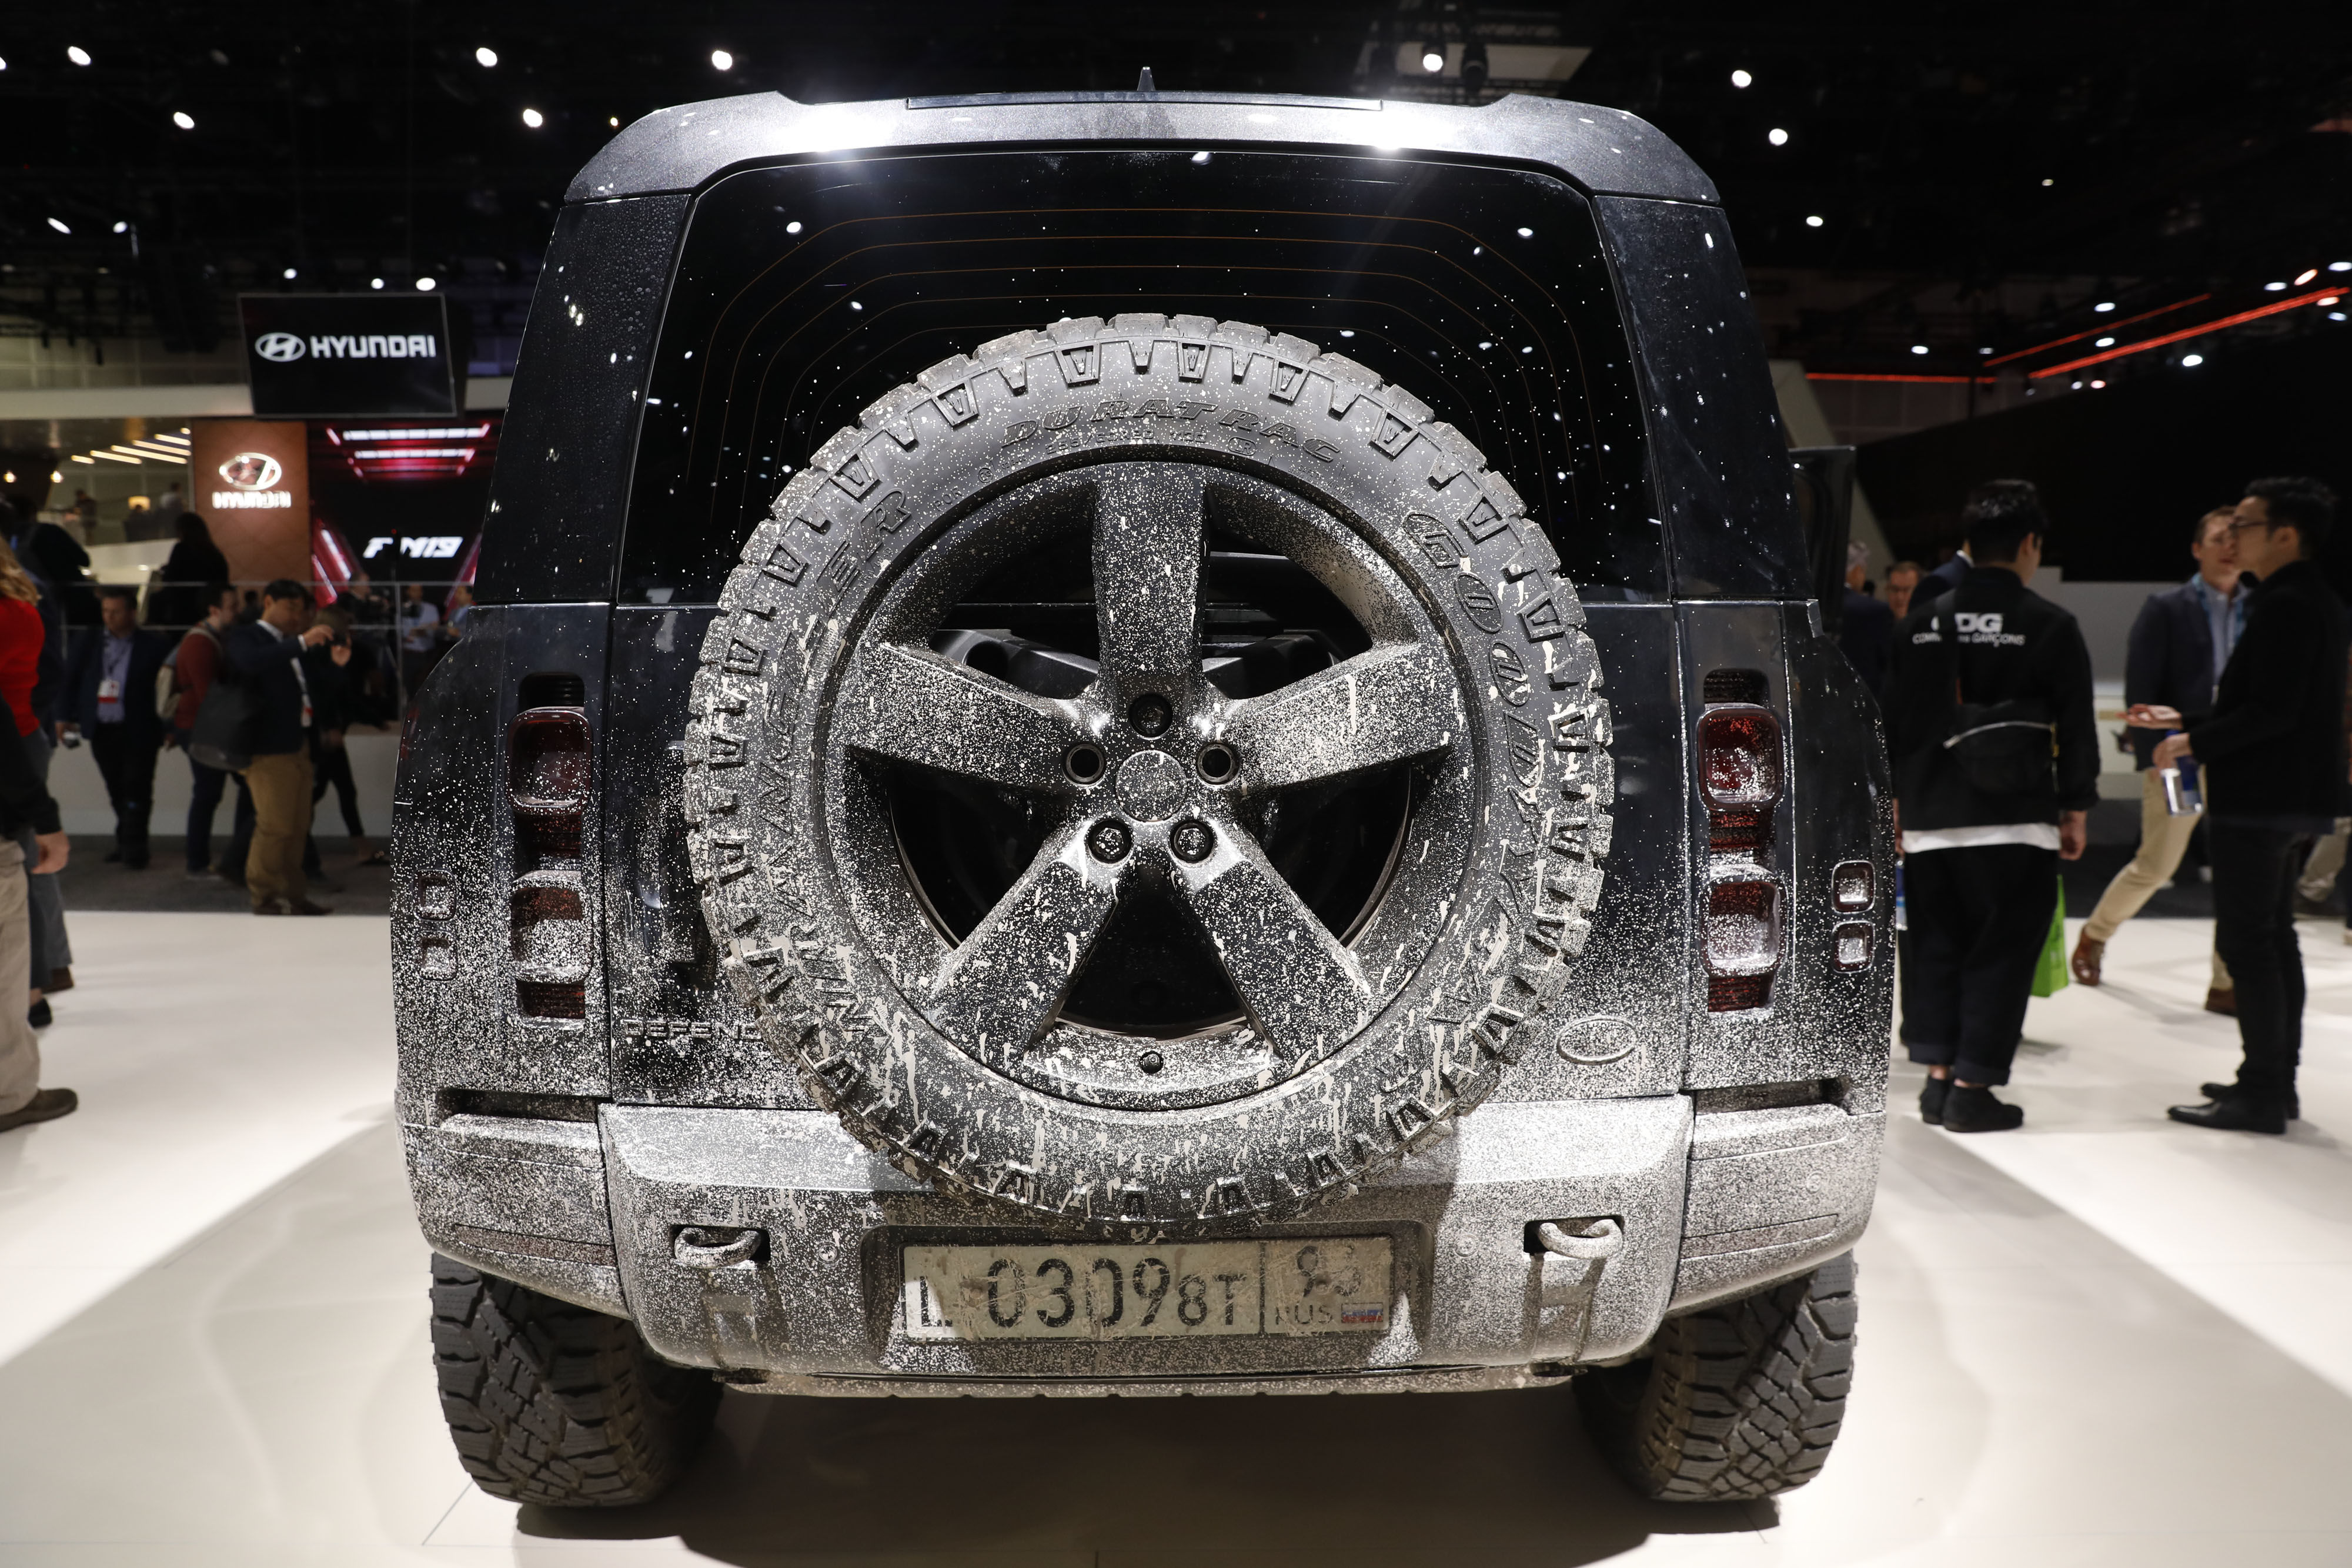 Known for its off-roading abilities, JLR says the Defender will come with as many as 170 optional accessories for customisation purposes. (Bloomberg)